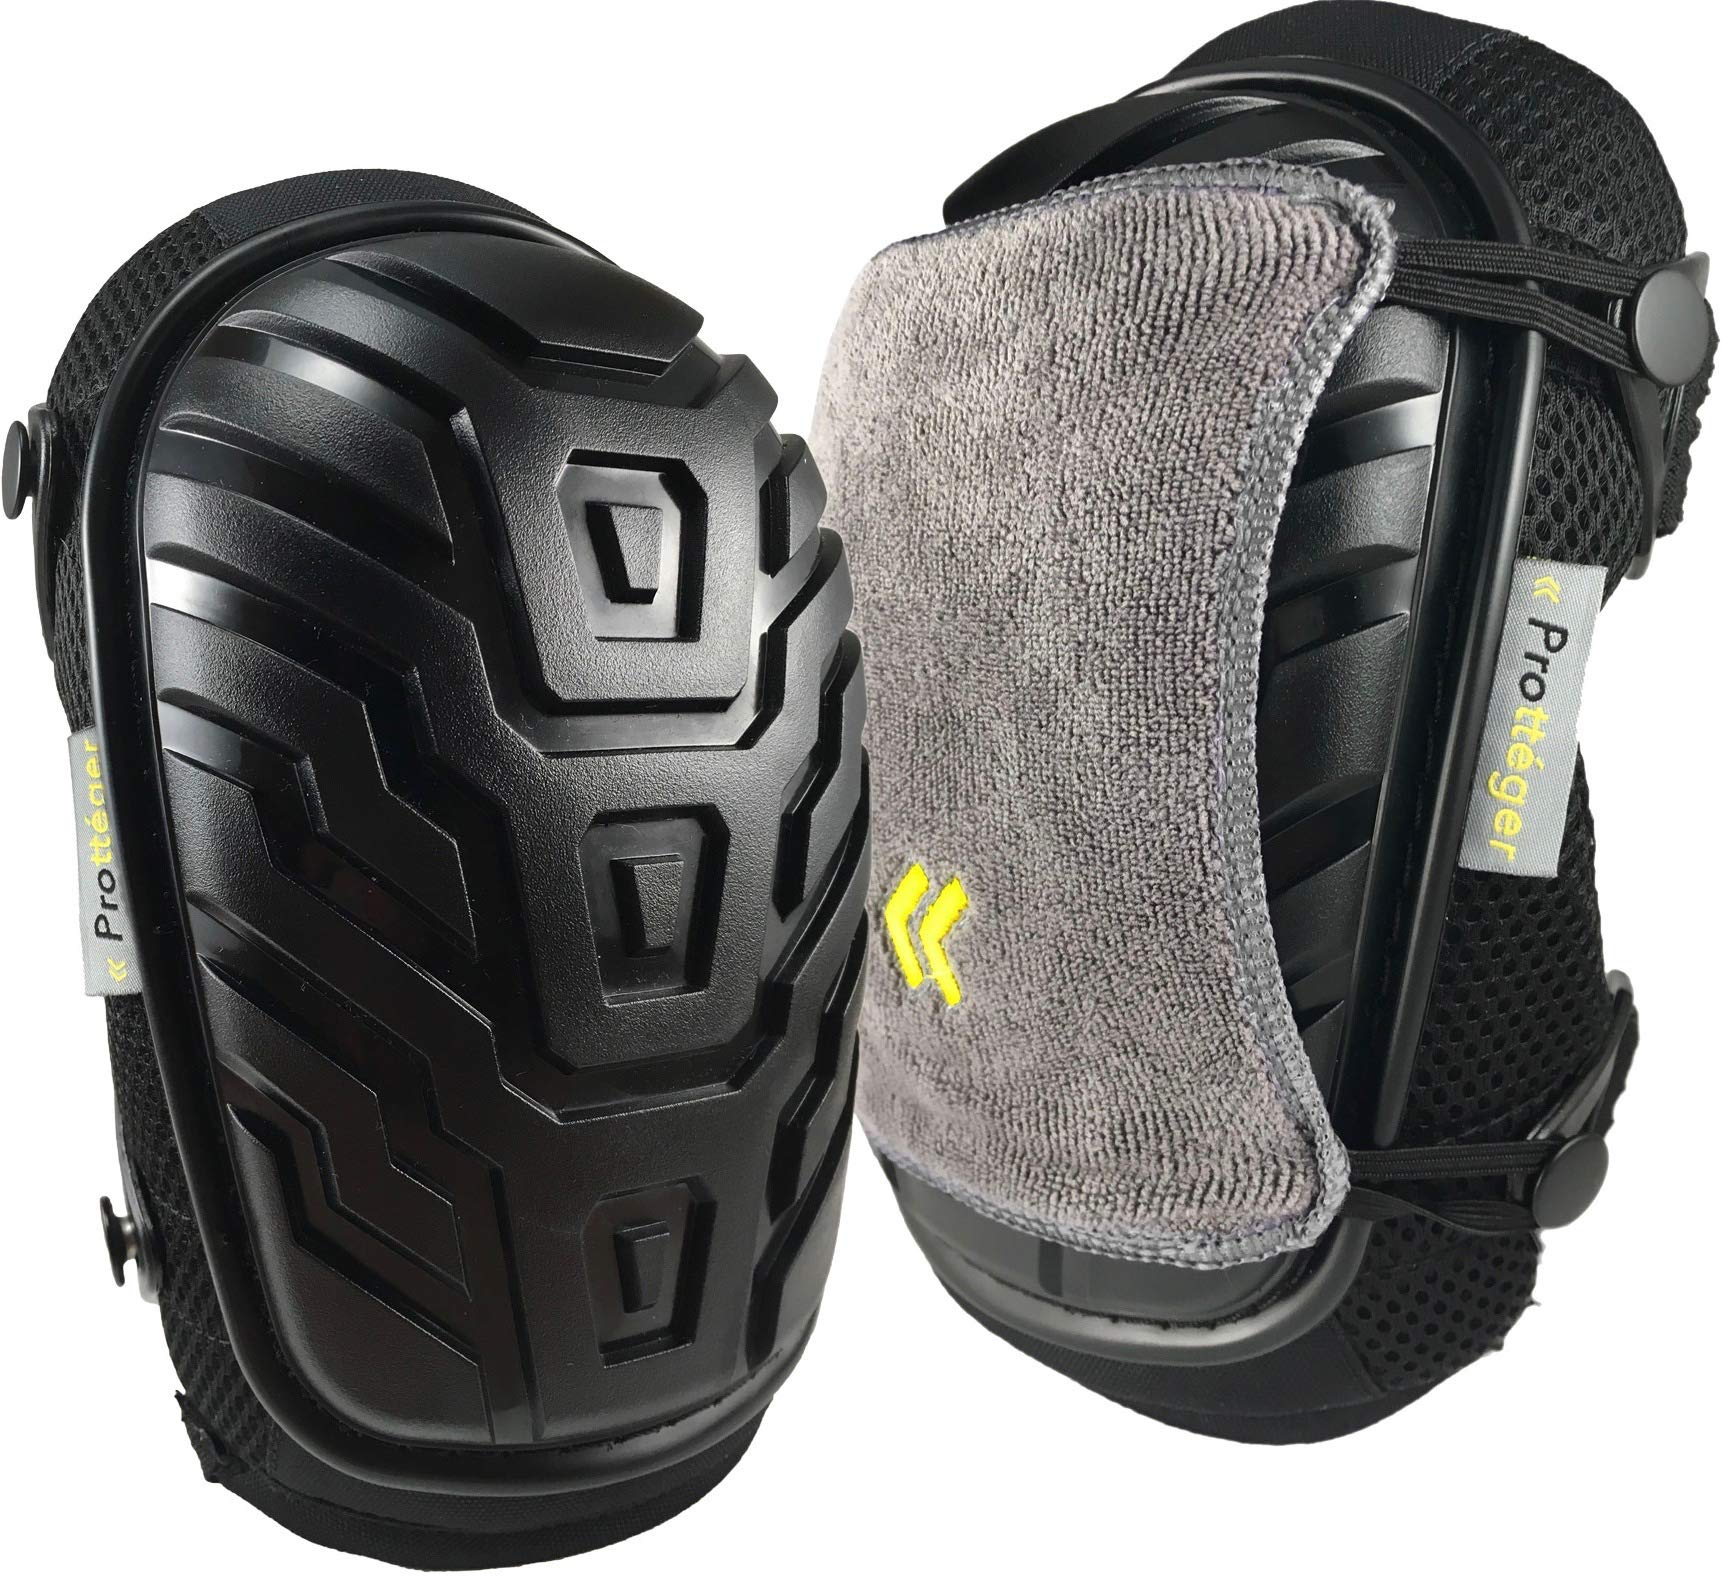 Knee Pads for Work by Protteger - Thickest Available Foam Padding with Gel Cushion - Double Adjustable No-Slip Straps - Bonus Microfiber Covers - Great for Construction, Gardening, Flooring, Cleaning by Prottéger